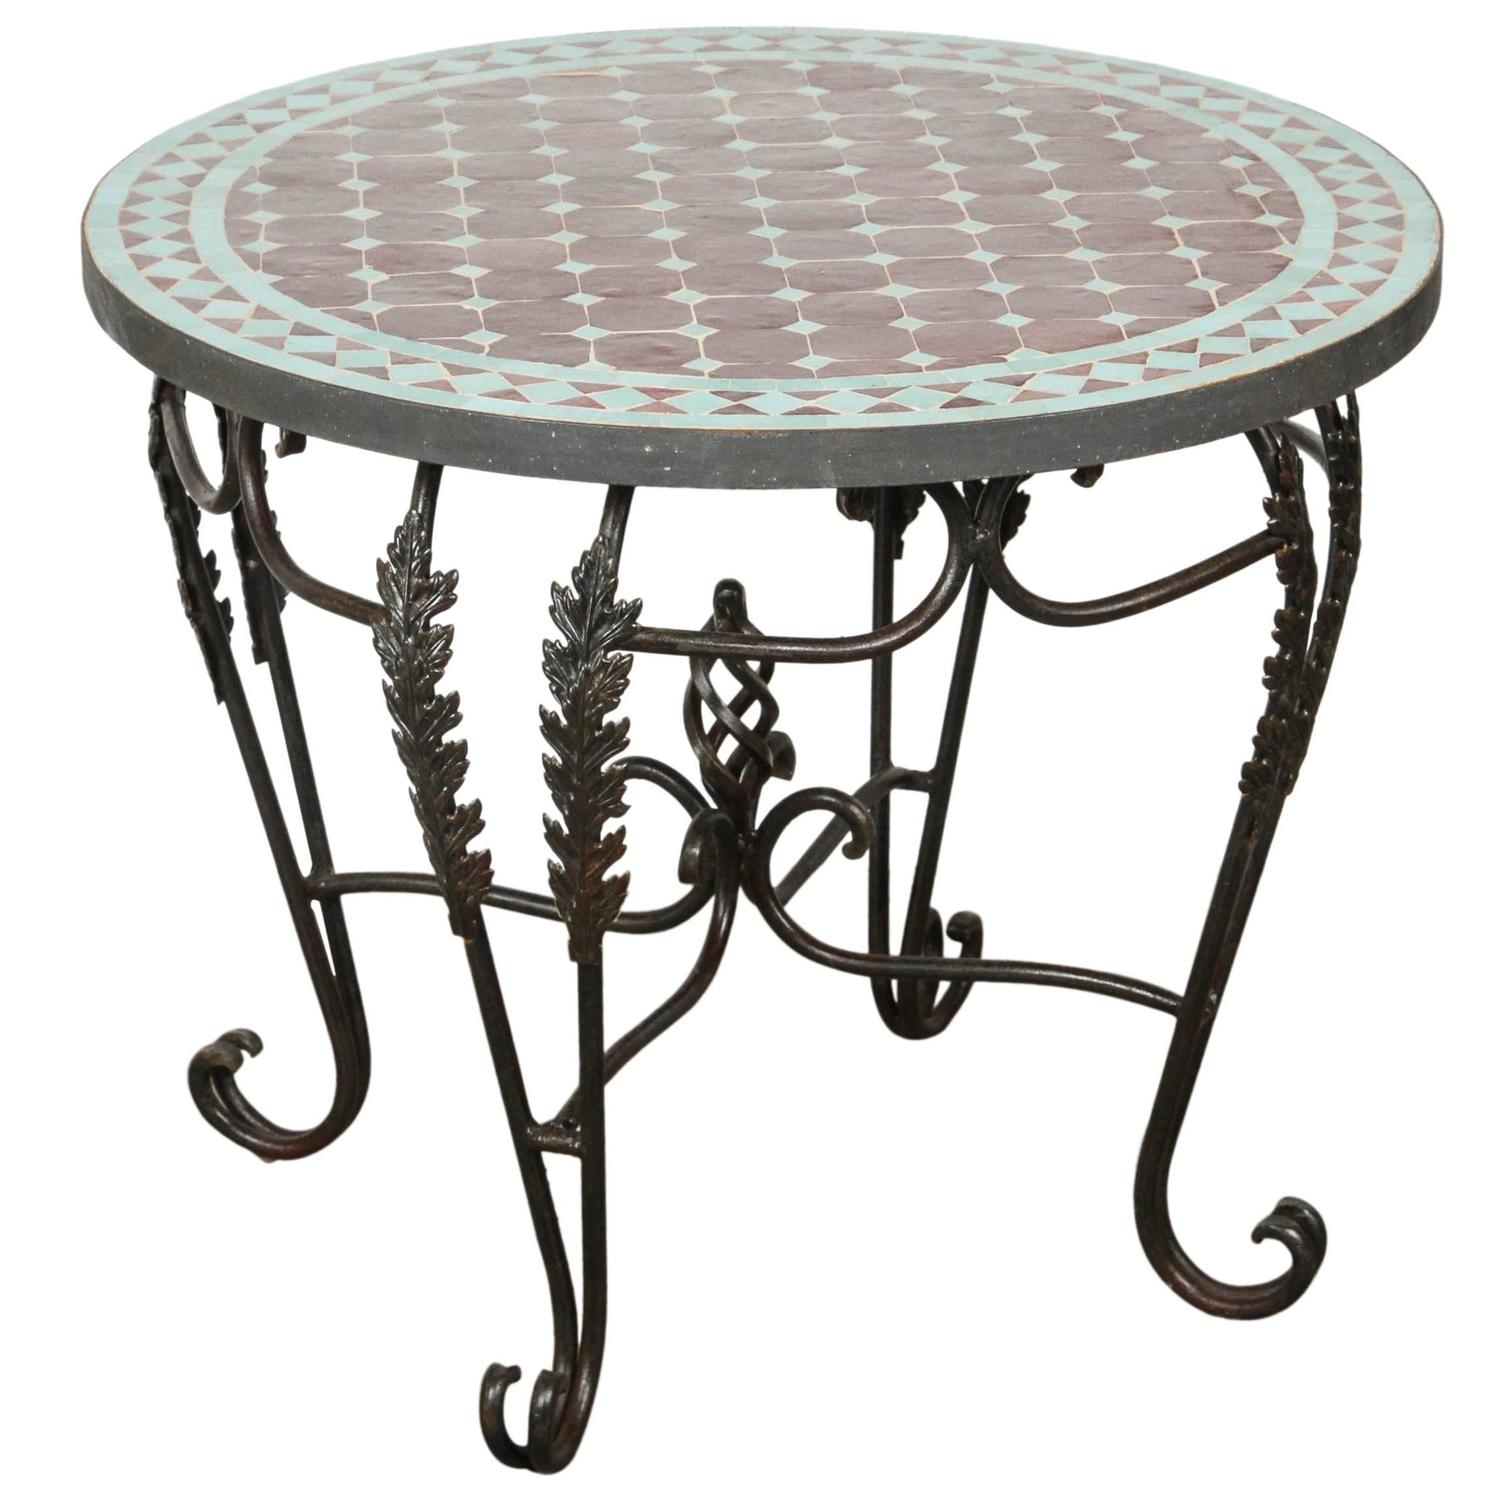 Moroccan Round Mosaic Tile Side Table For Sale At 1stdibs